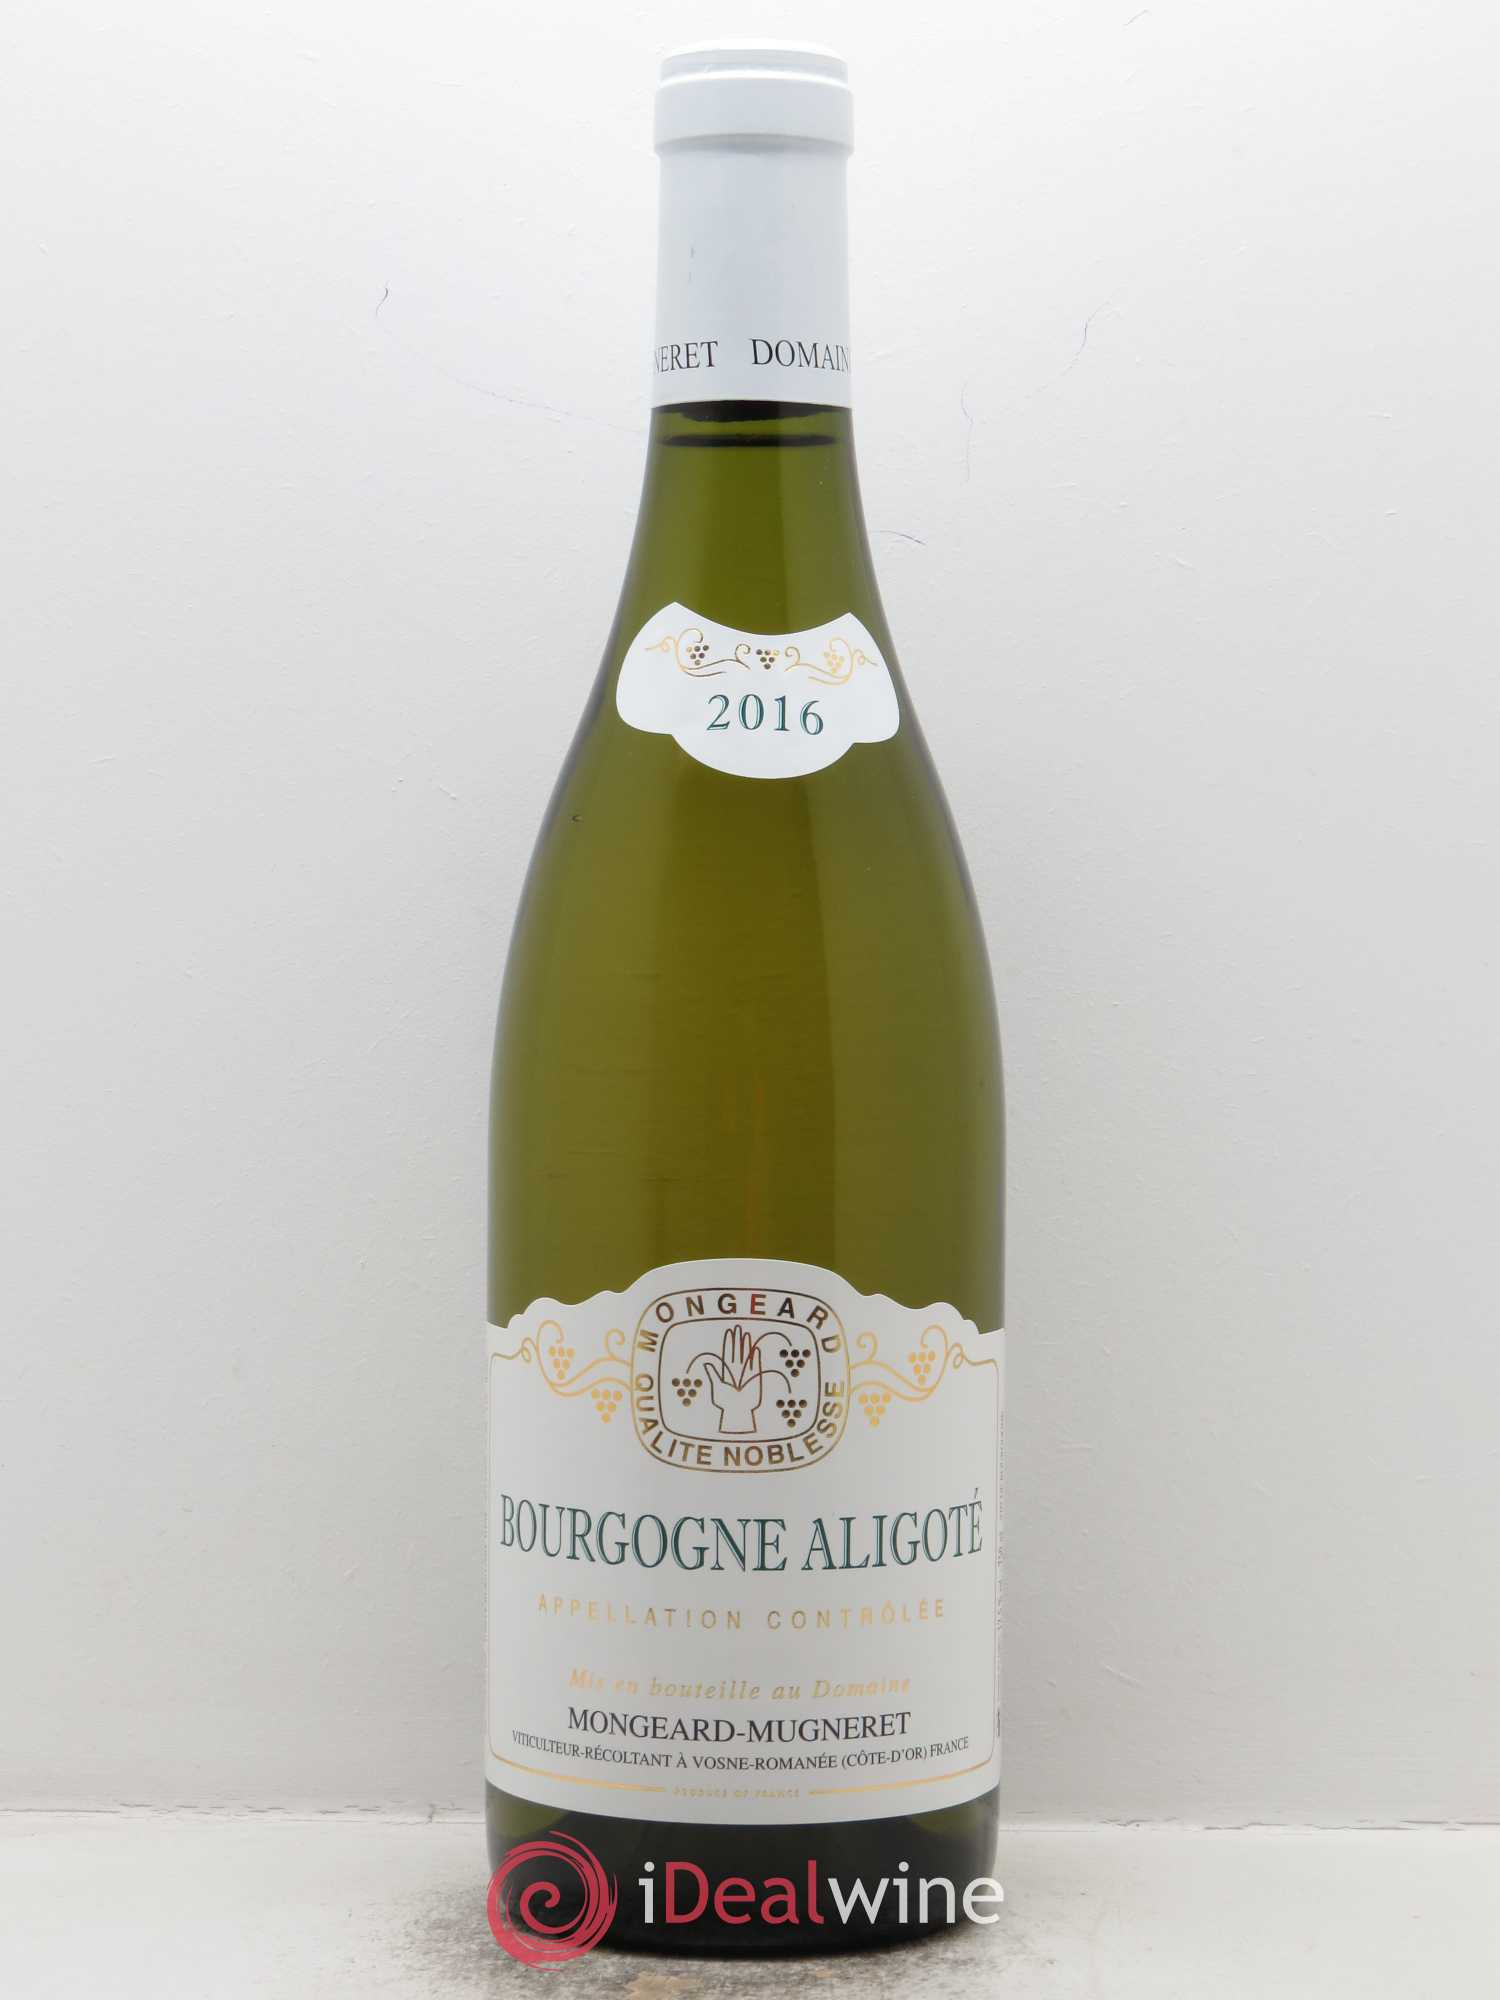 Bourgogne Aligoté Mongeard-Mugneret (Domaine)  2016 - Lot of 1 Bottle